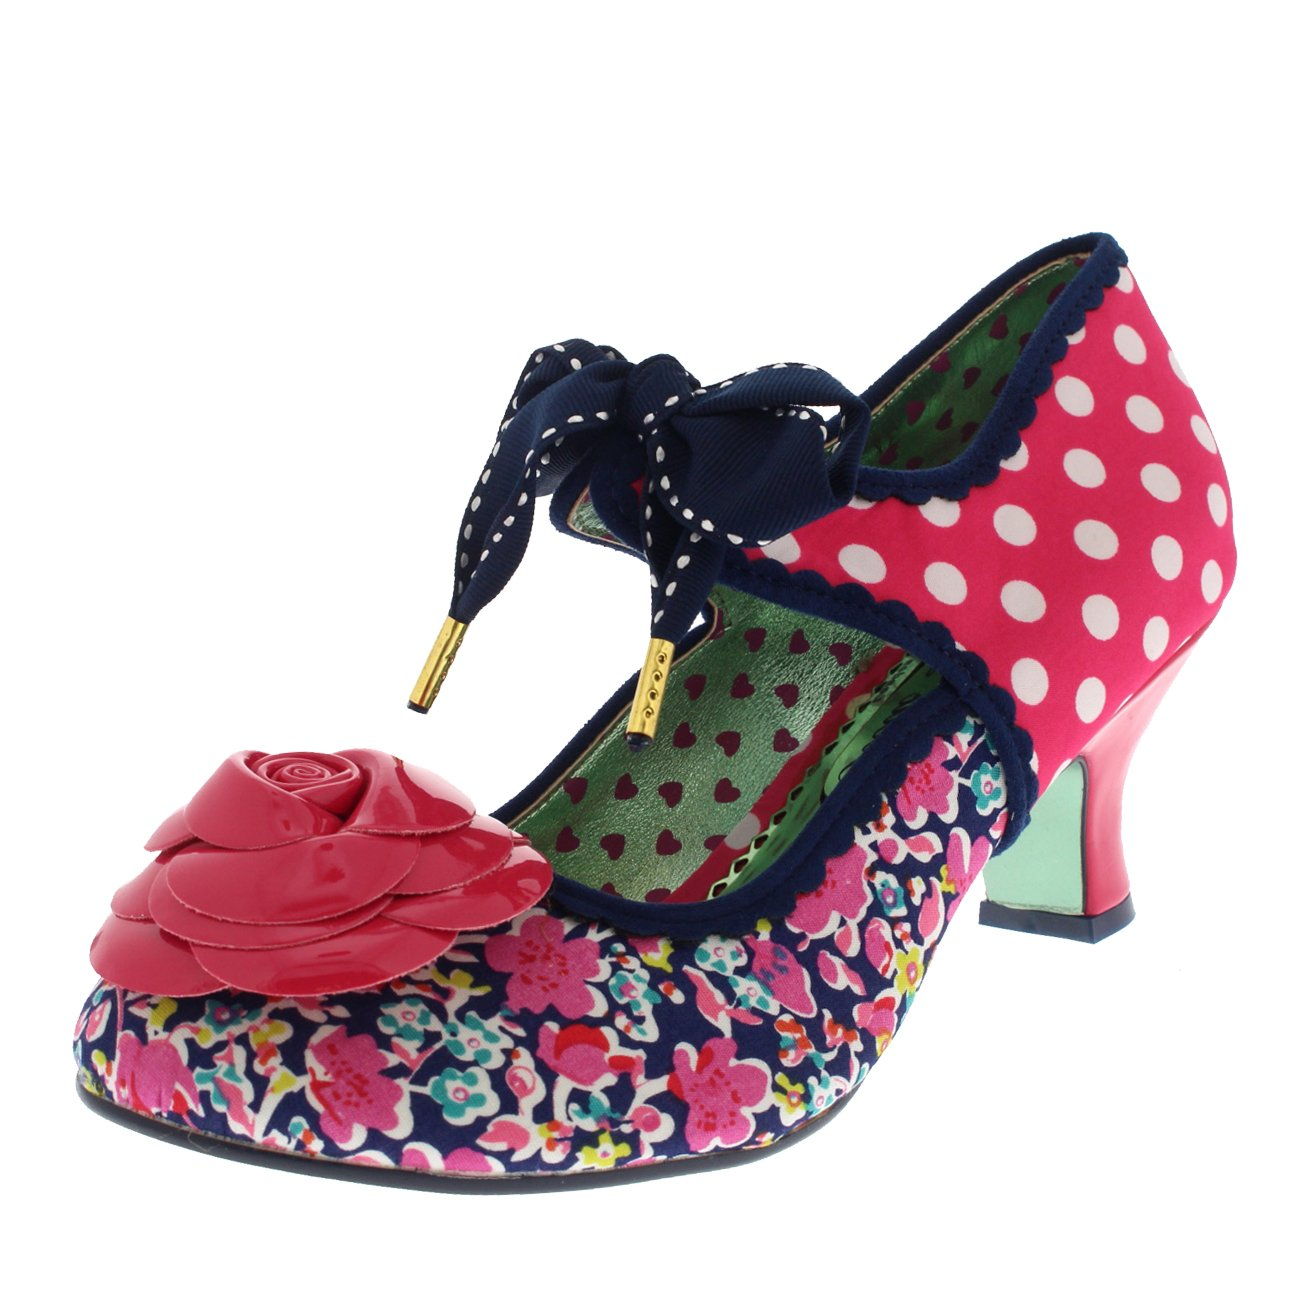 Womens Poetic Licence Summer Sands Polka Dot Court Shoes Kitten Heel - Pink - 8